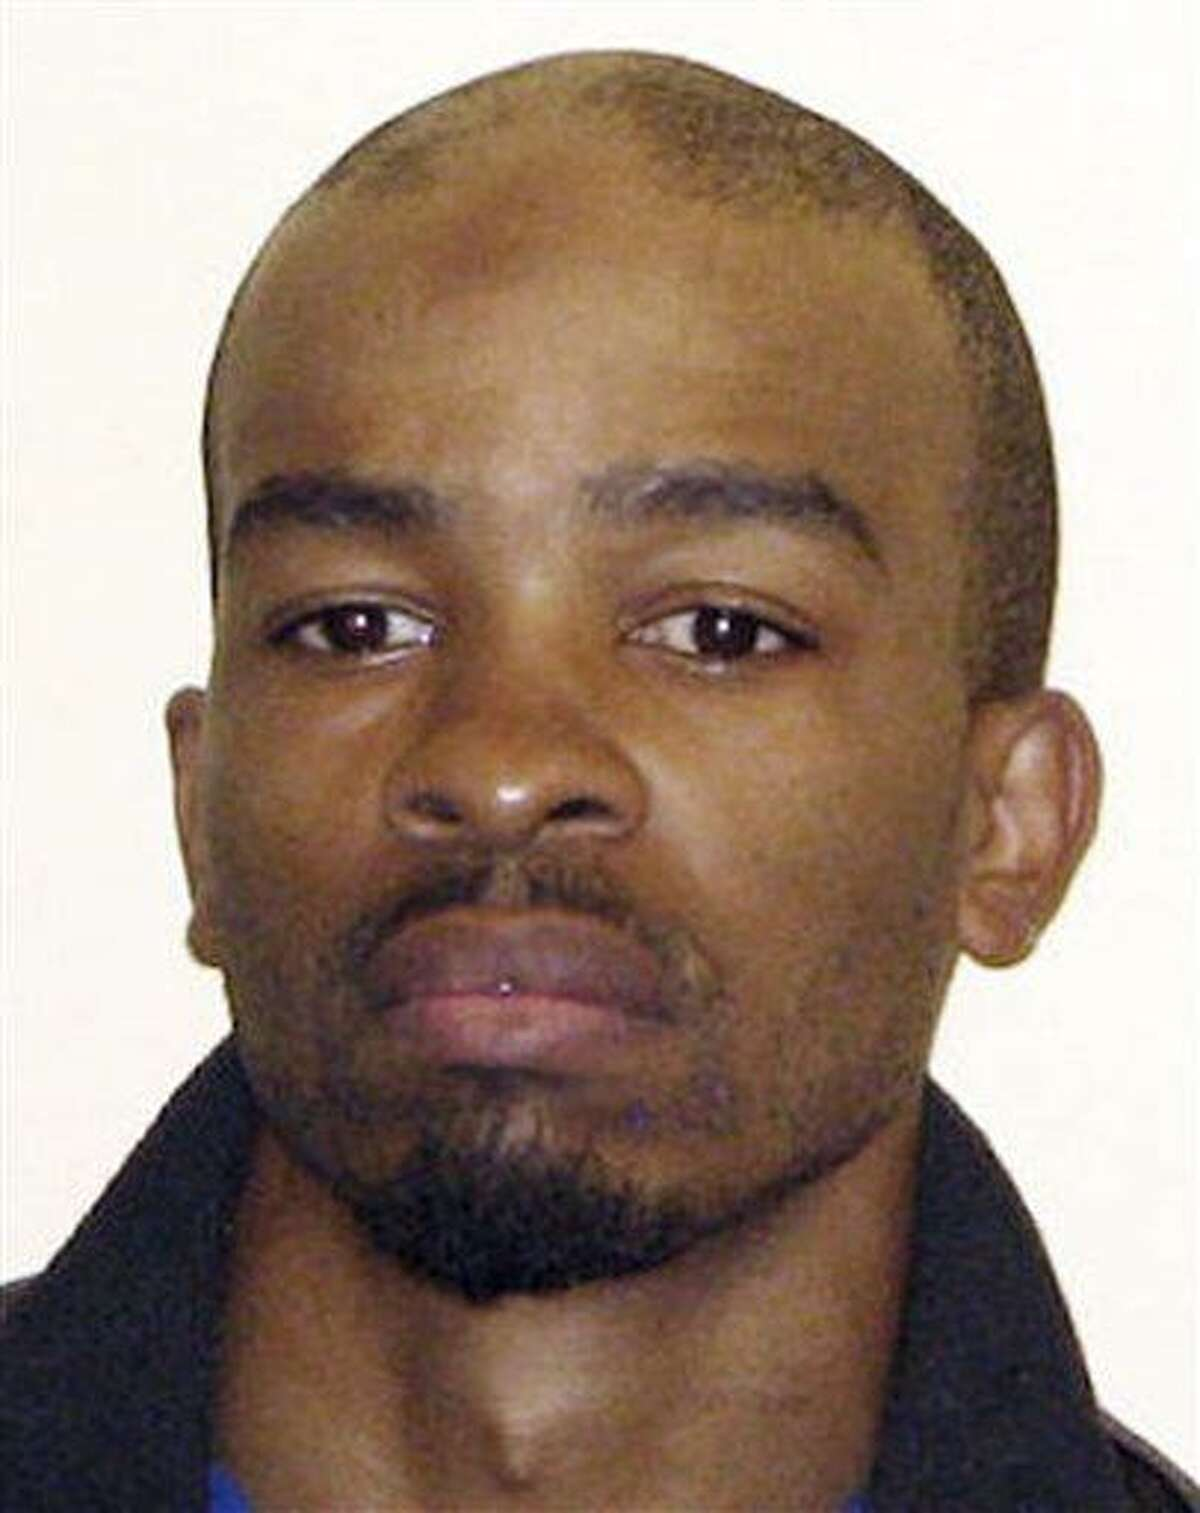 FILE - This undated file photo provided by the Cuyahoga County Sheriff Department shows Michael Madison. Authorities responding to a report of a foul odor from a home discovered a body and arrested a registered sex offender, Madison, who sent police and volunteers through a poor Ohio neighborhood in a search for more victims, officials said Sunday, July 21, 2013. The arraignment in Cleveland on charges of killing three women whose bodies were found wrapped in trash bags is scheduled Wednesday morning July 31, 2013 for 35-year-old Michael Madison. He is being held on $6 million bond. (AP Photo/Cuyahoga County Sheriff Department, File)